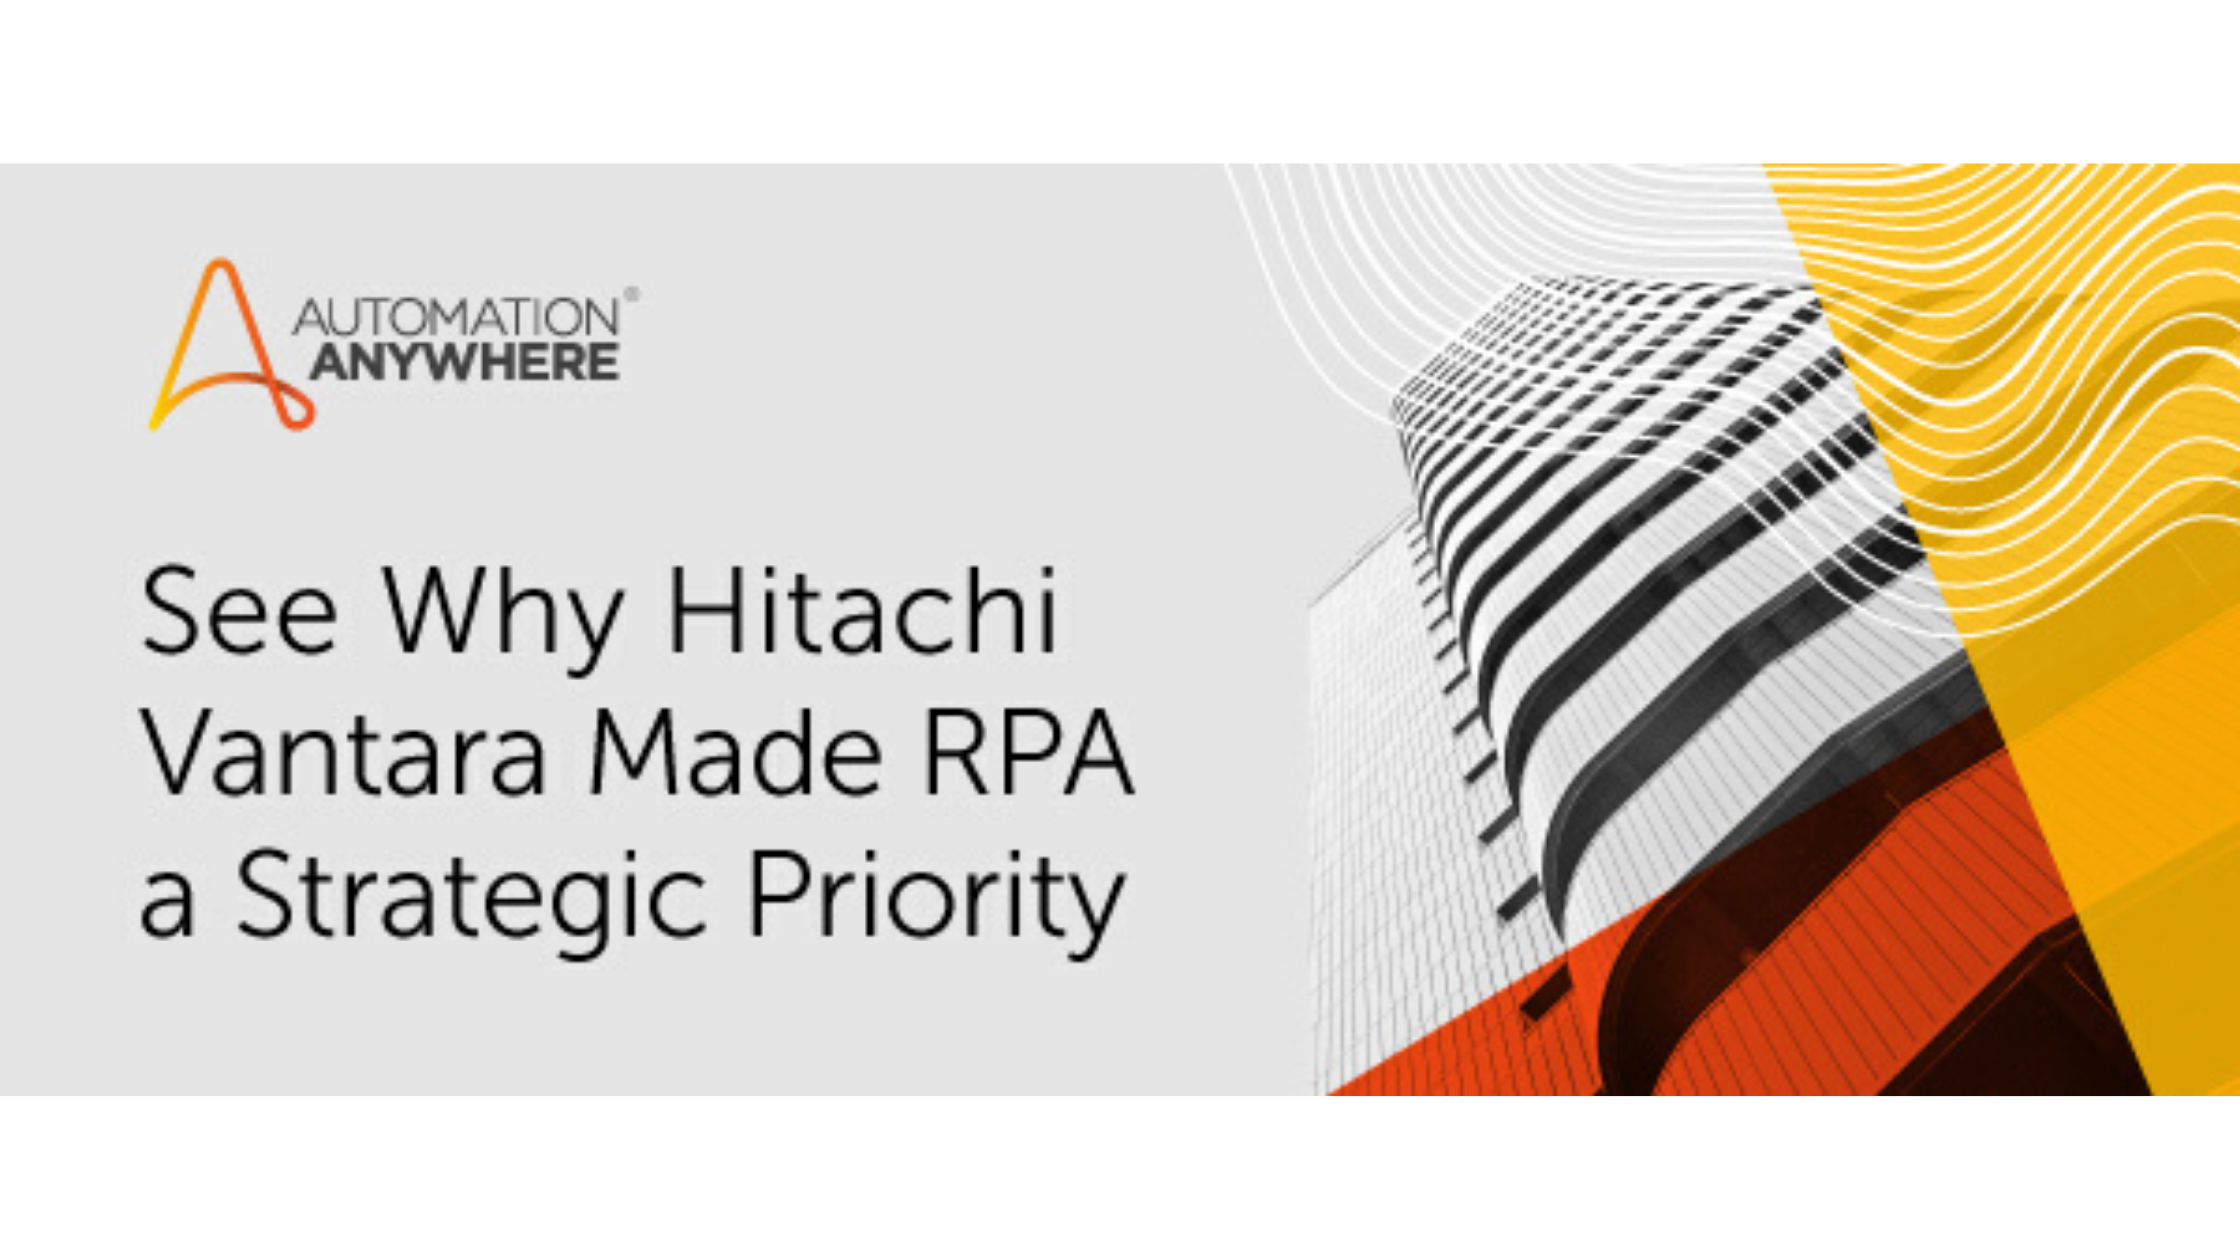 Case Study: See Why Hitachi Vantara Made RPA a Strategic Priority